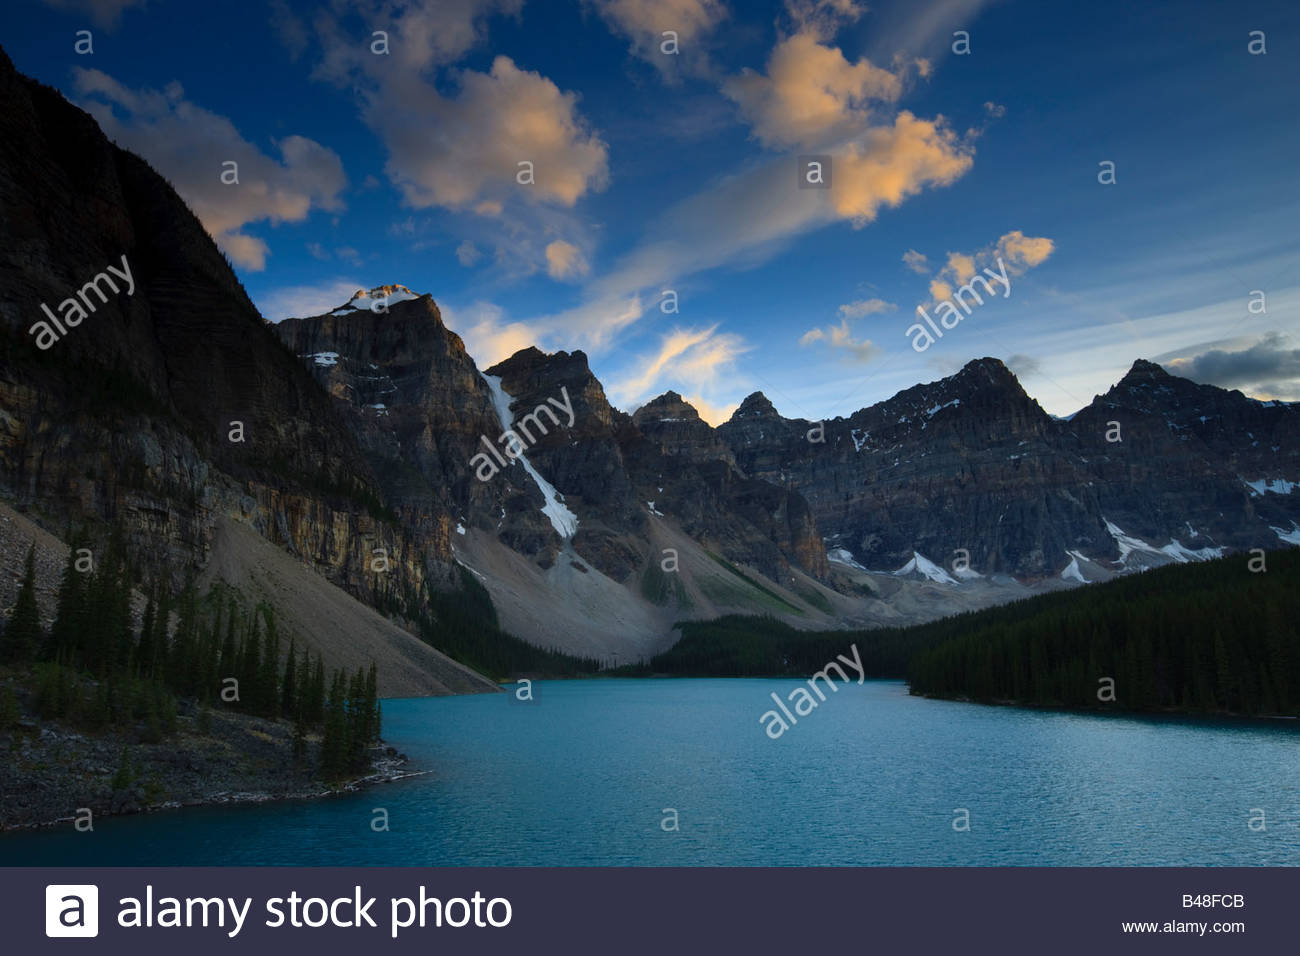 Strong winds blow cumulus clouds over the Canadian Rockies and Moraine Lake at sunset. - Stock Image